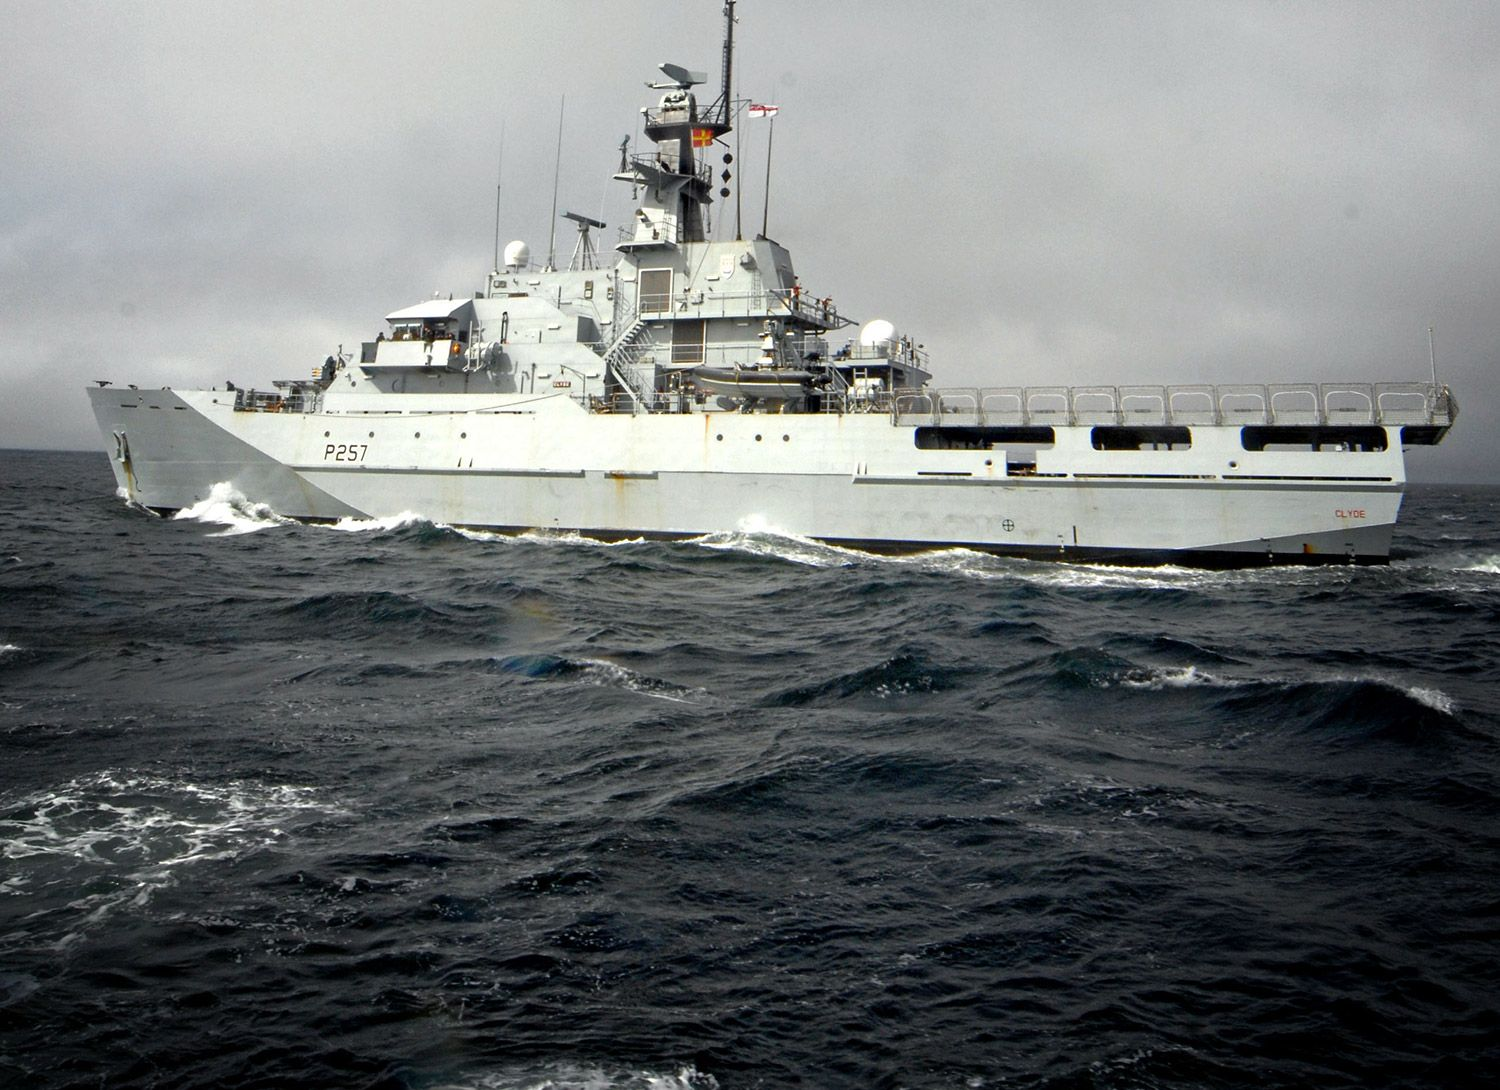 Royal Navy Offshore Patrol Vessels conduct fishery